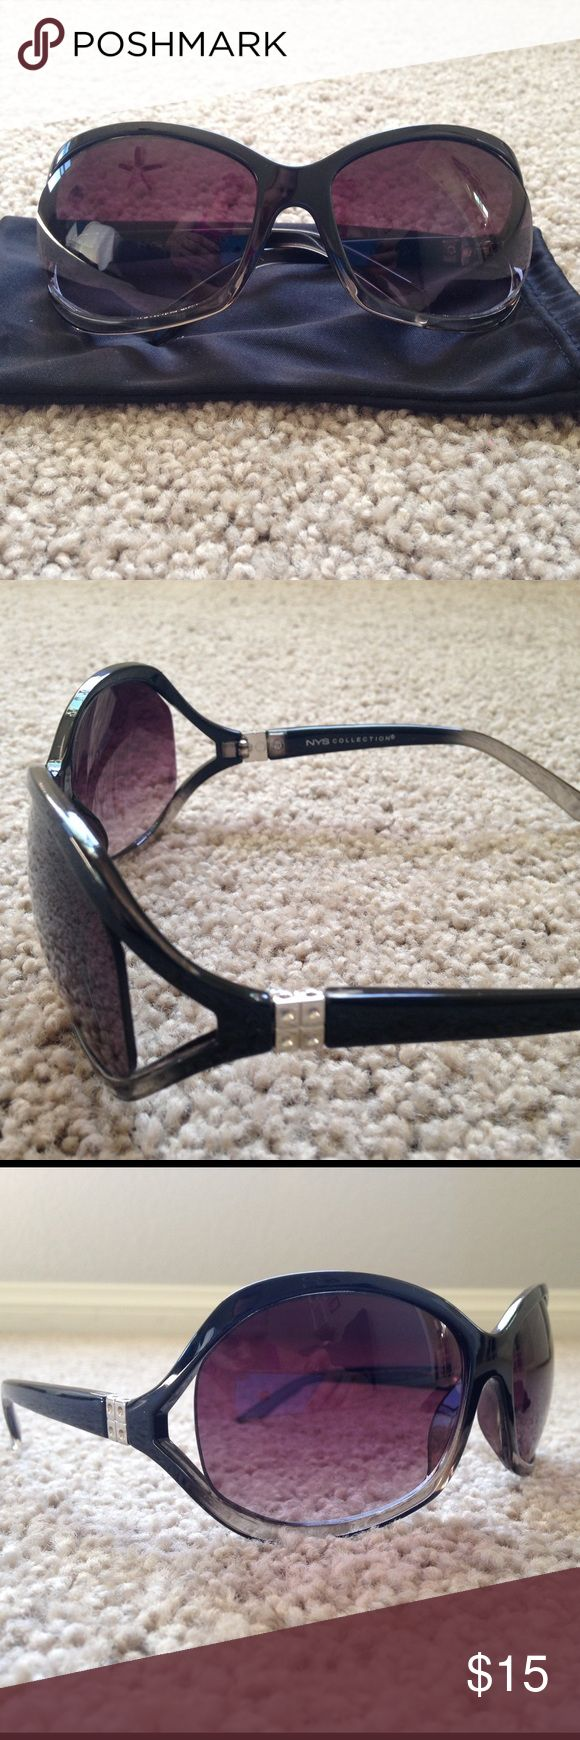 NWOT NYS sunglasses NWOT!!! Never worn!! NYS collection sunglasses. The are black with a smoke color at the bottom of the rim and the back of the bow. Come with pouch for protection. Accessories Sunglasses